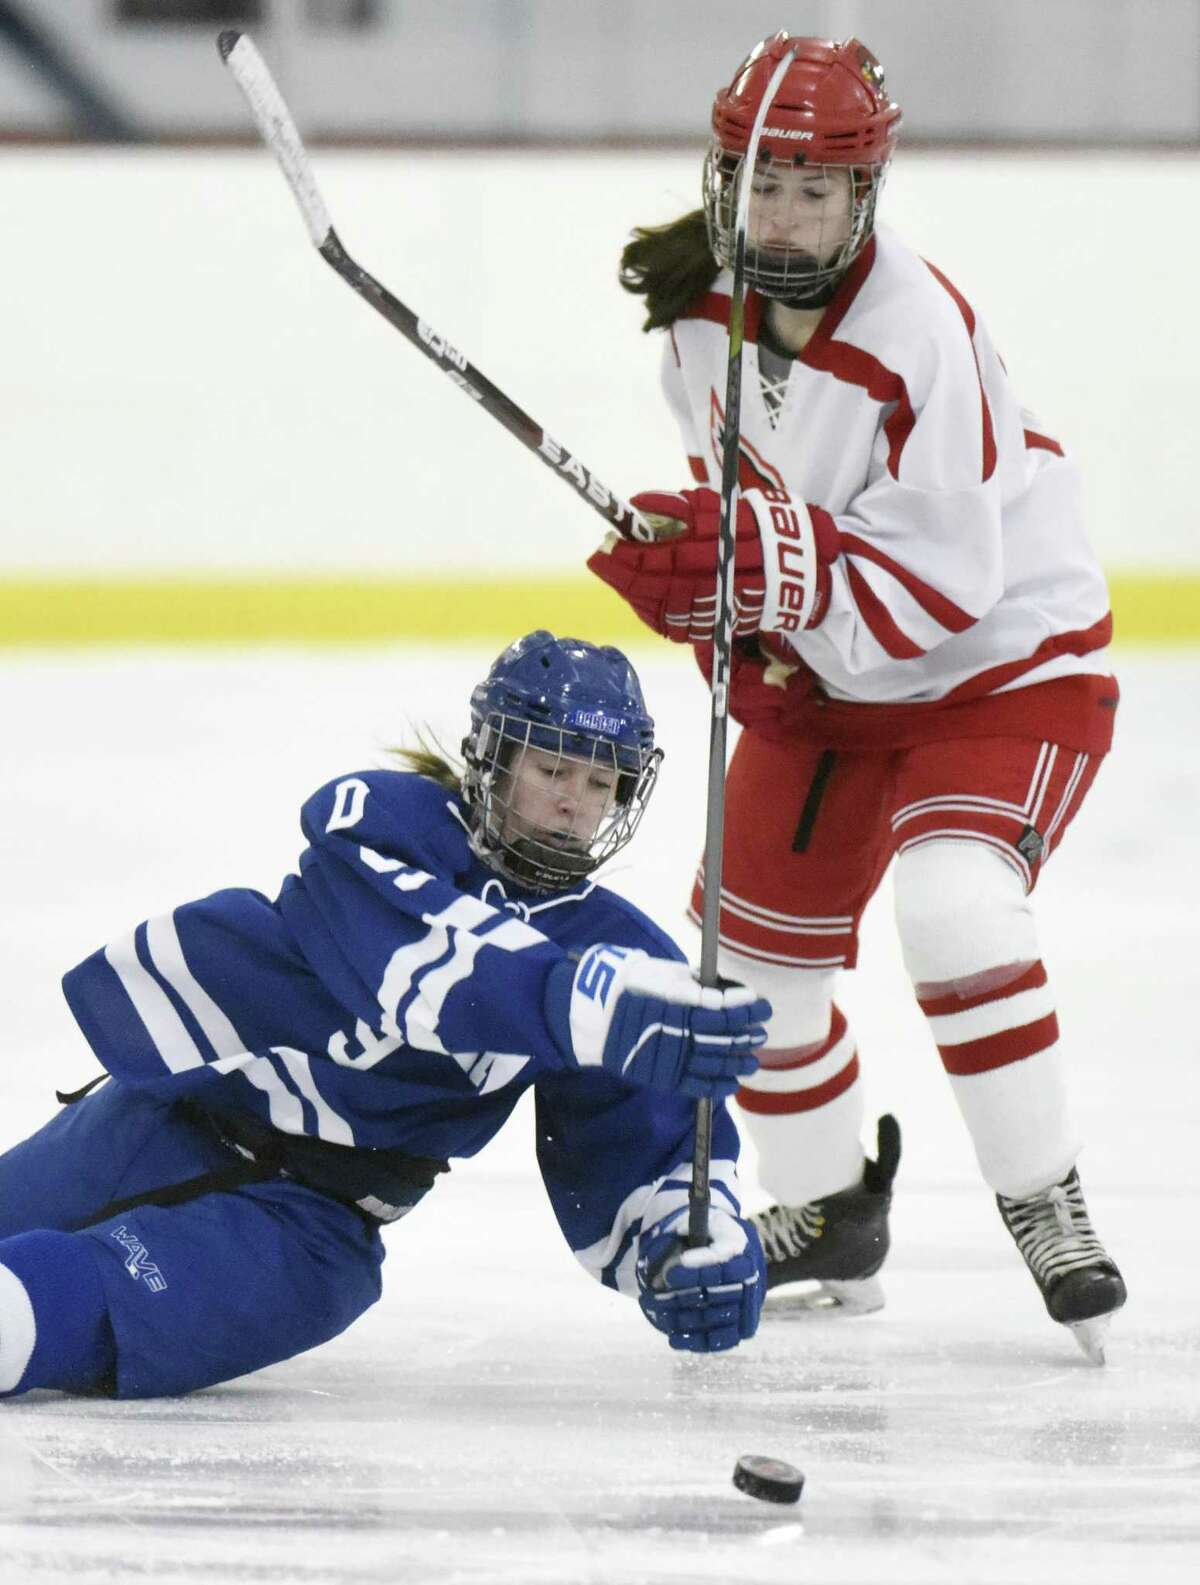 Darien's Kate Bellissimo, left, slips to the ice while battling Greenwich's Katie Piotrzkowski for the puck in the high school girls hockey game between Greenwich and Darien at Dorothy Hamill Skating Rink in Greenwich, Conn. Monday, Feb. 5, 2018.